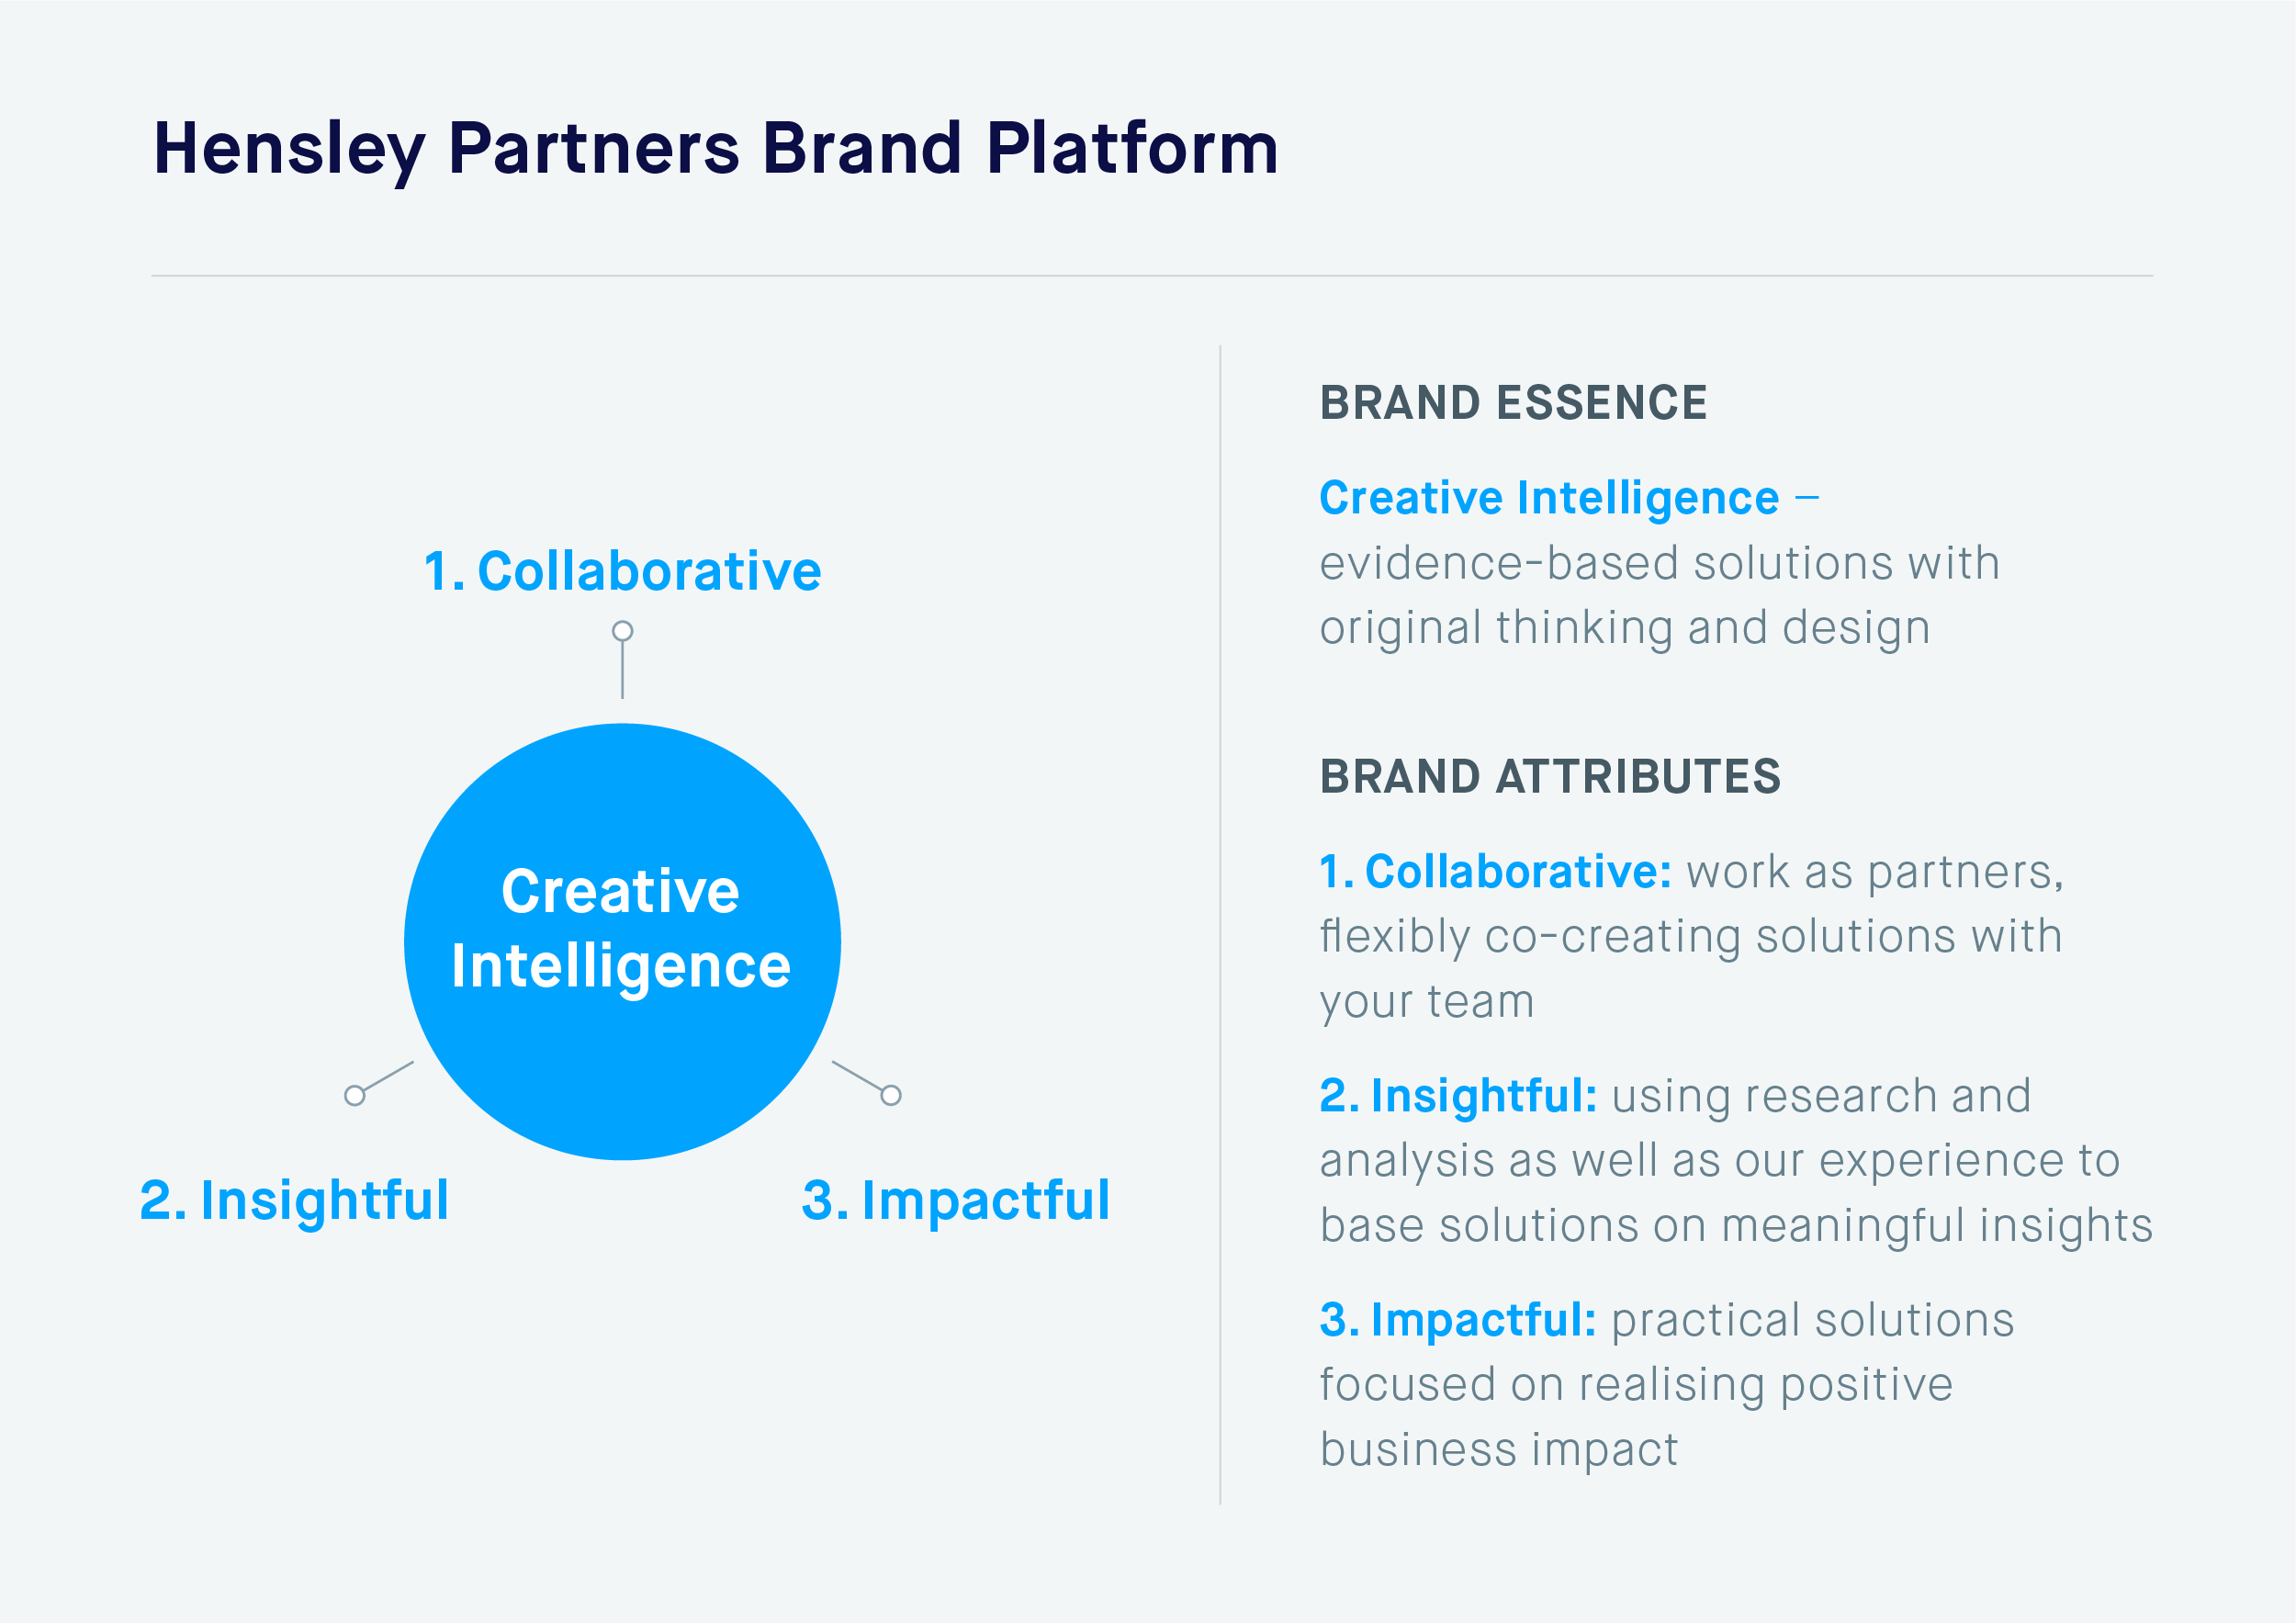 Our revised brand platform – the basis for the brand refresh